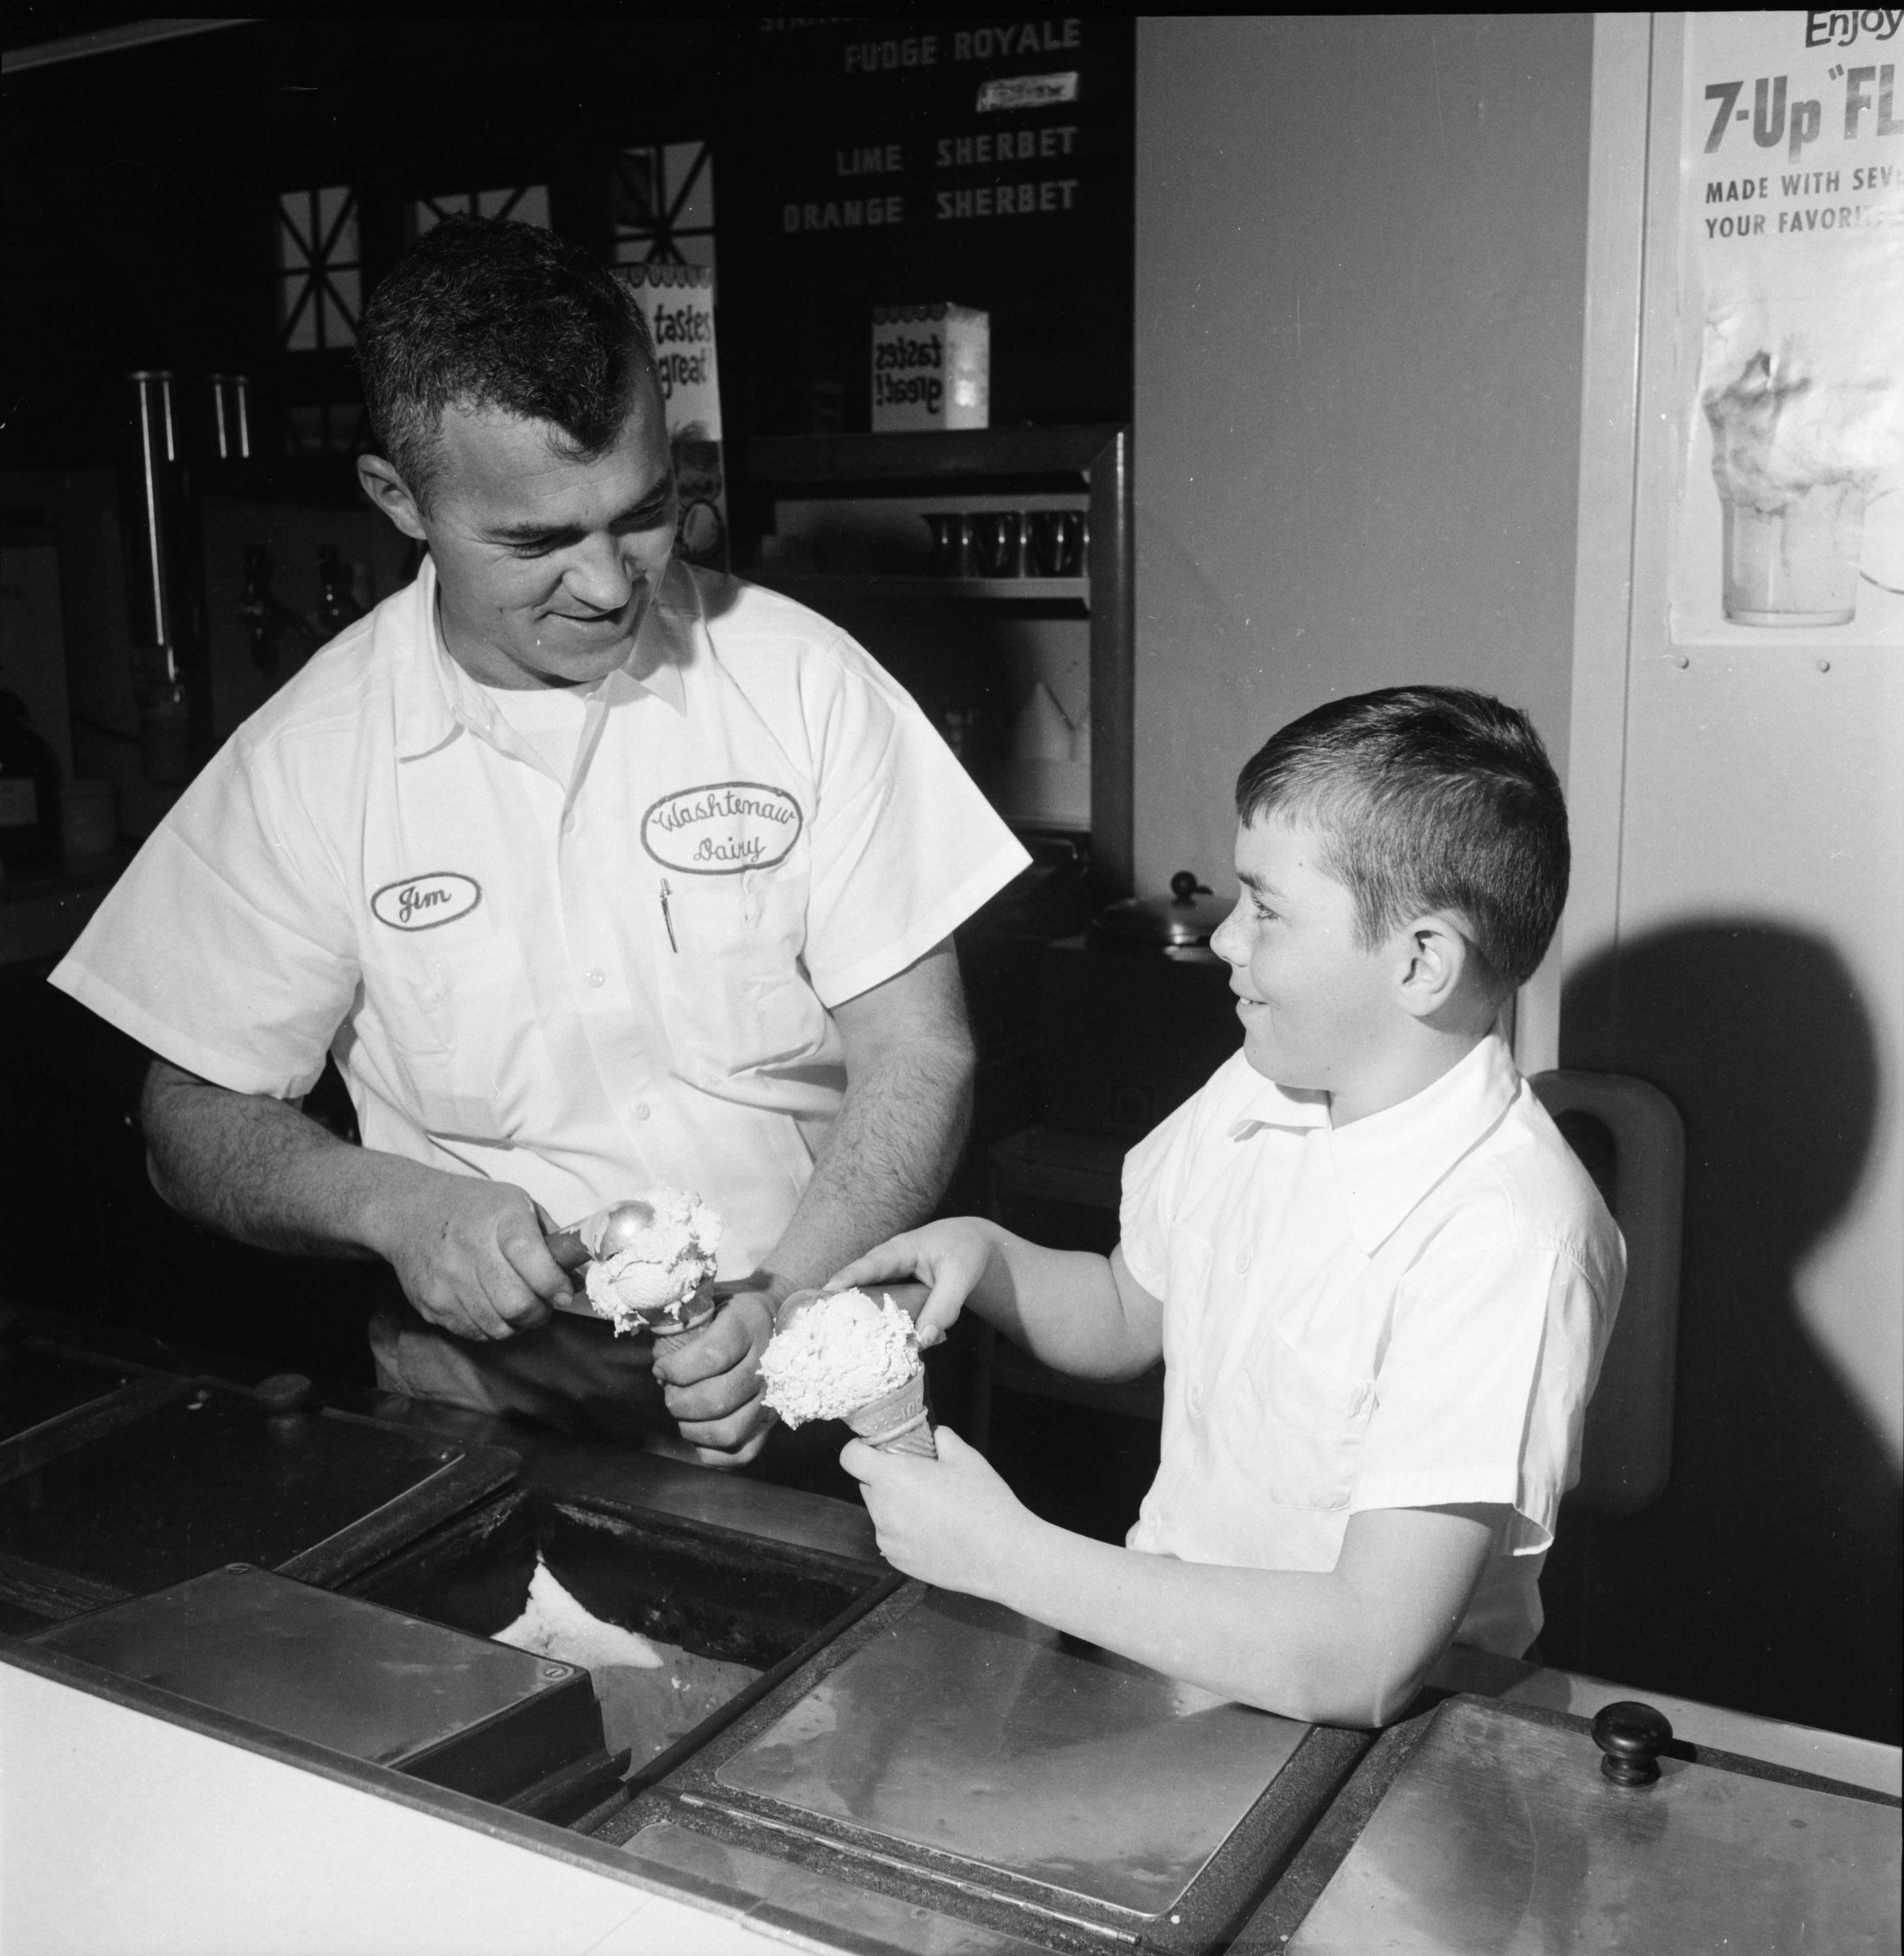 Jim Smith, Jr. learns to mount a scoop of ice cream from his dad, February 3, 1962 image